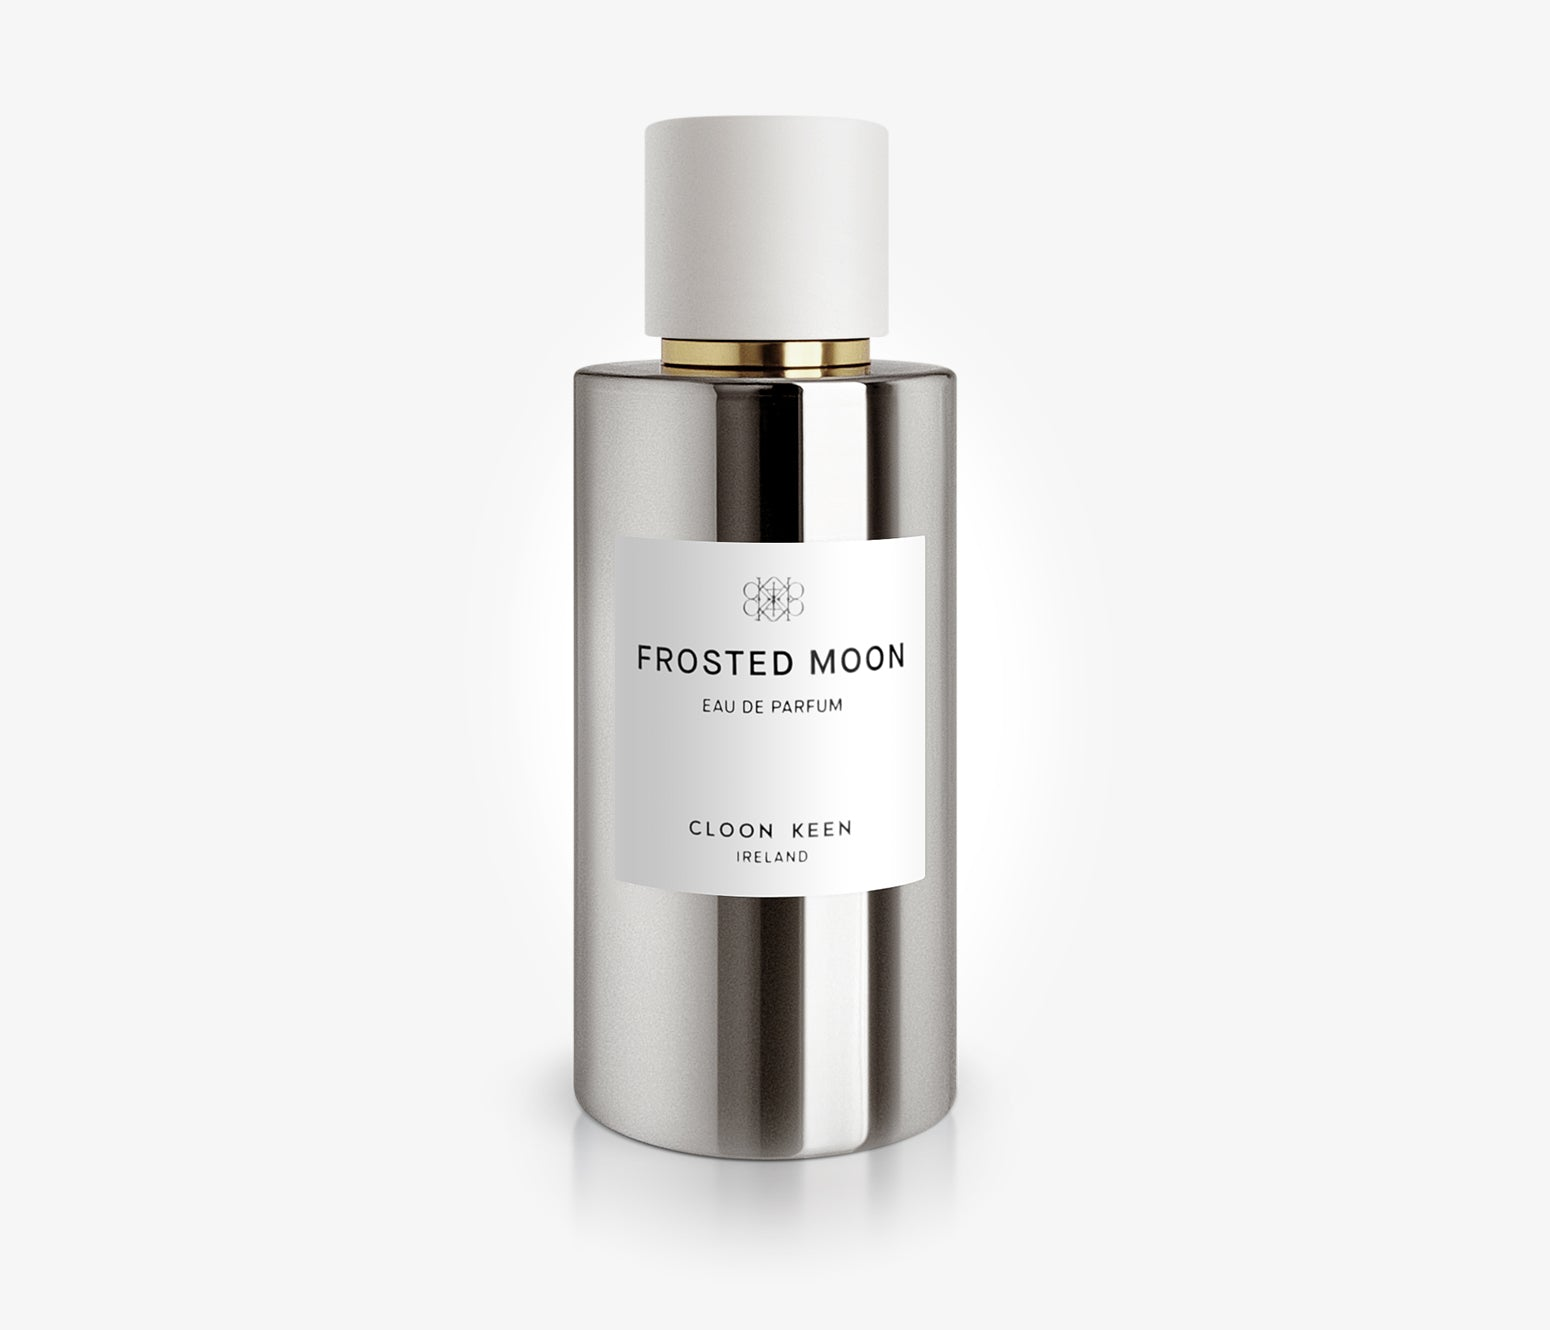 Cloon Keen - Frosted Moon - 100ml - SCC1333 - product image - Fragrance - Les Senteurs